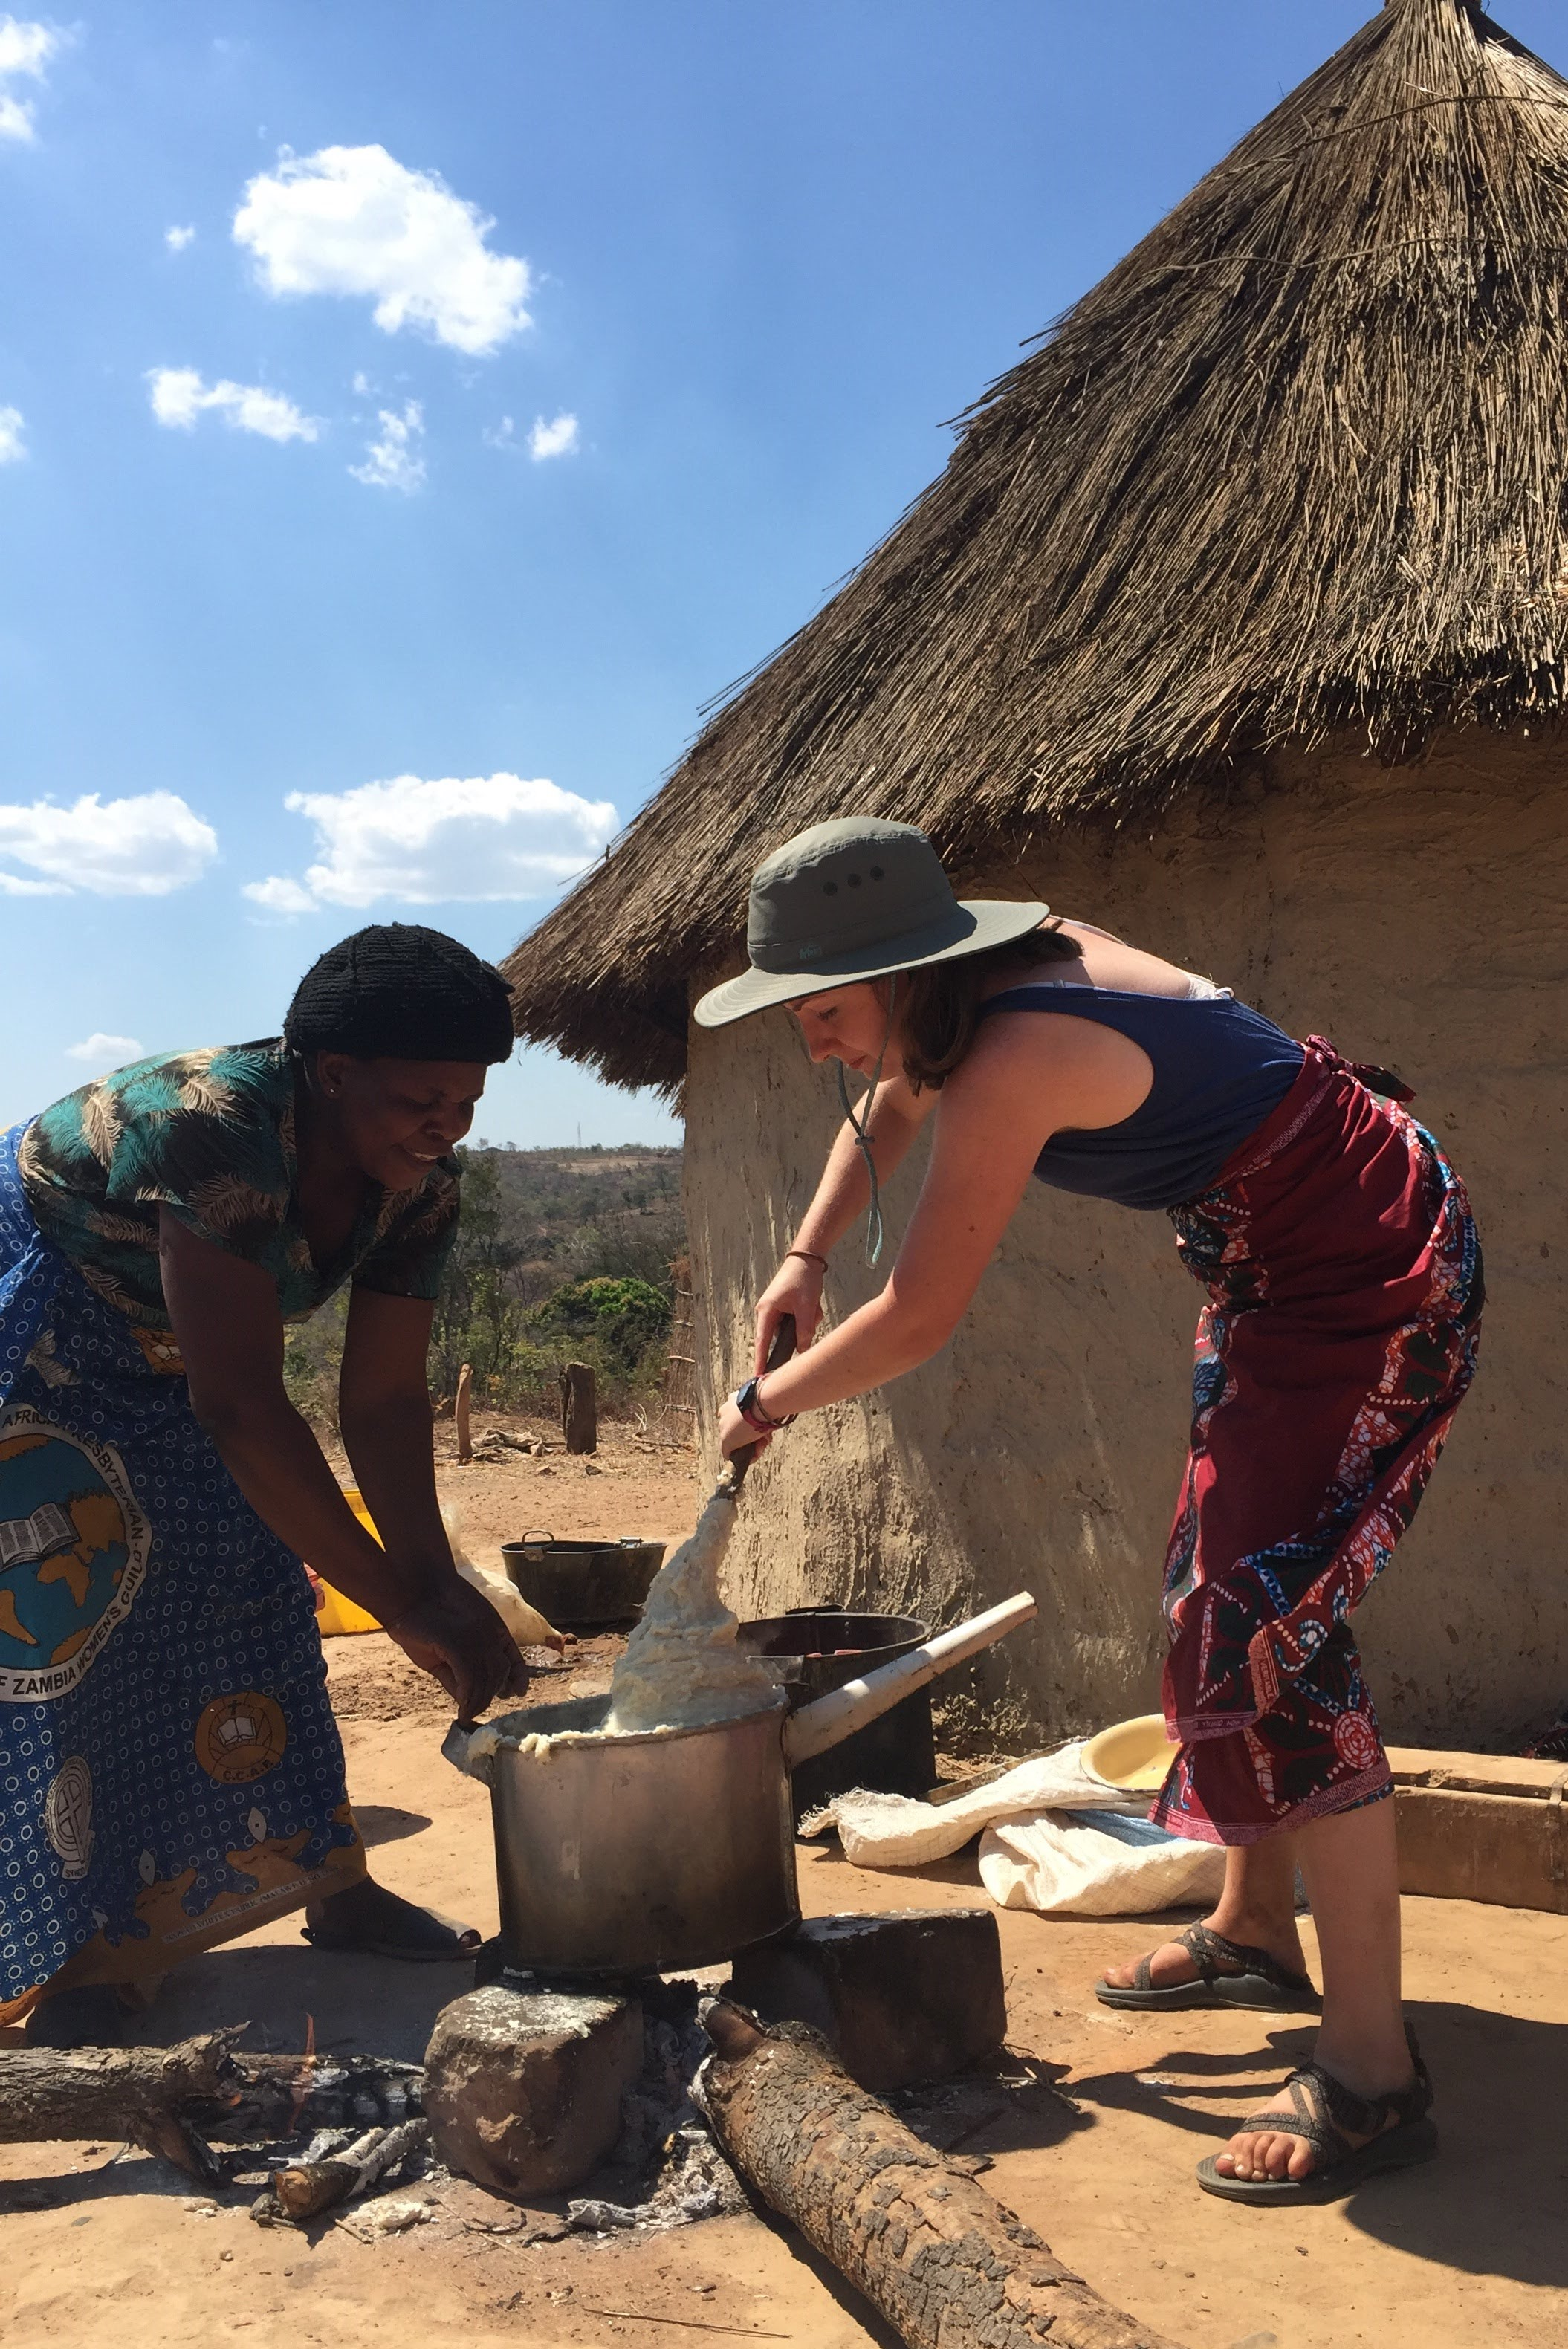 During in-country orientation, Zambia YAVs were hosted for a few nights in a village 90 kilometers outside Lusaka. Here Emily learns to make Zambia's staple food, nshima, over a fire, with cultural interpreter Mabuchi coaching and assisting.  Photo by Miguel Petrosky